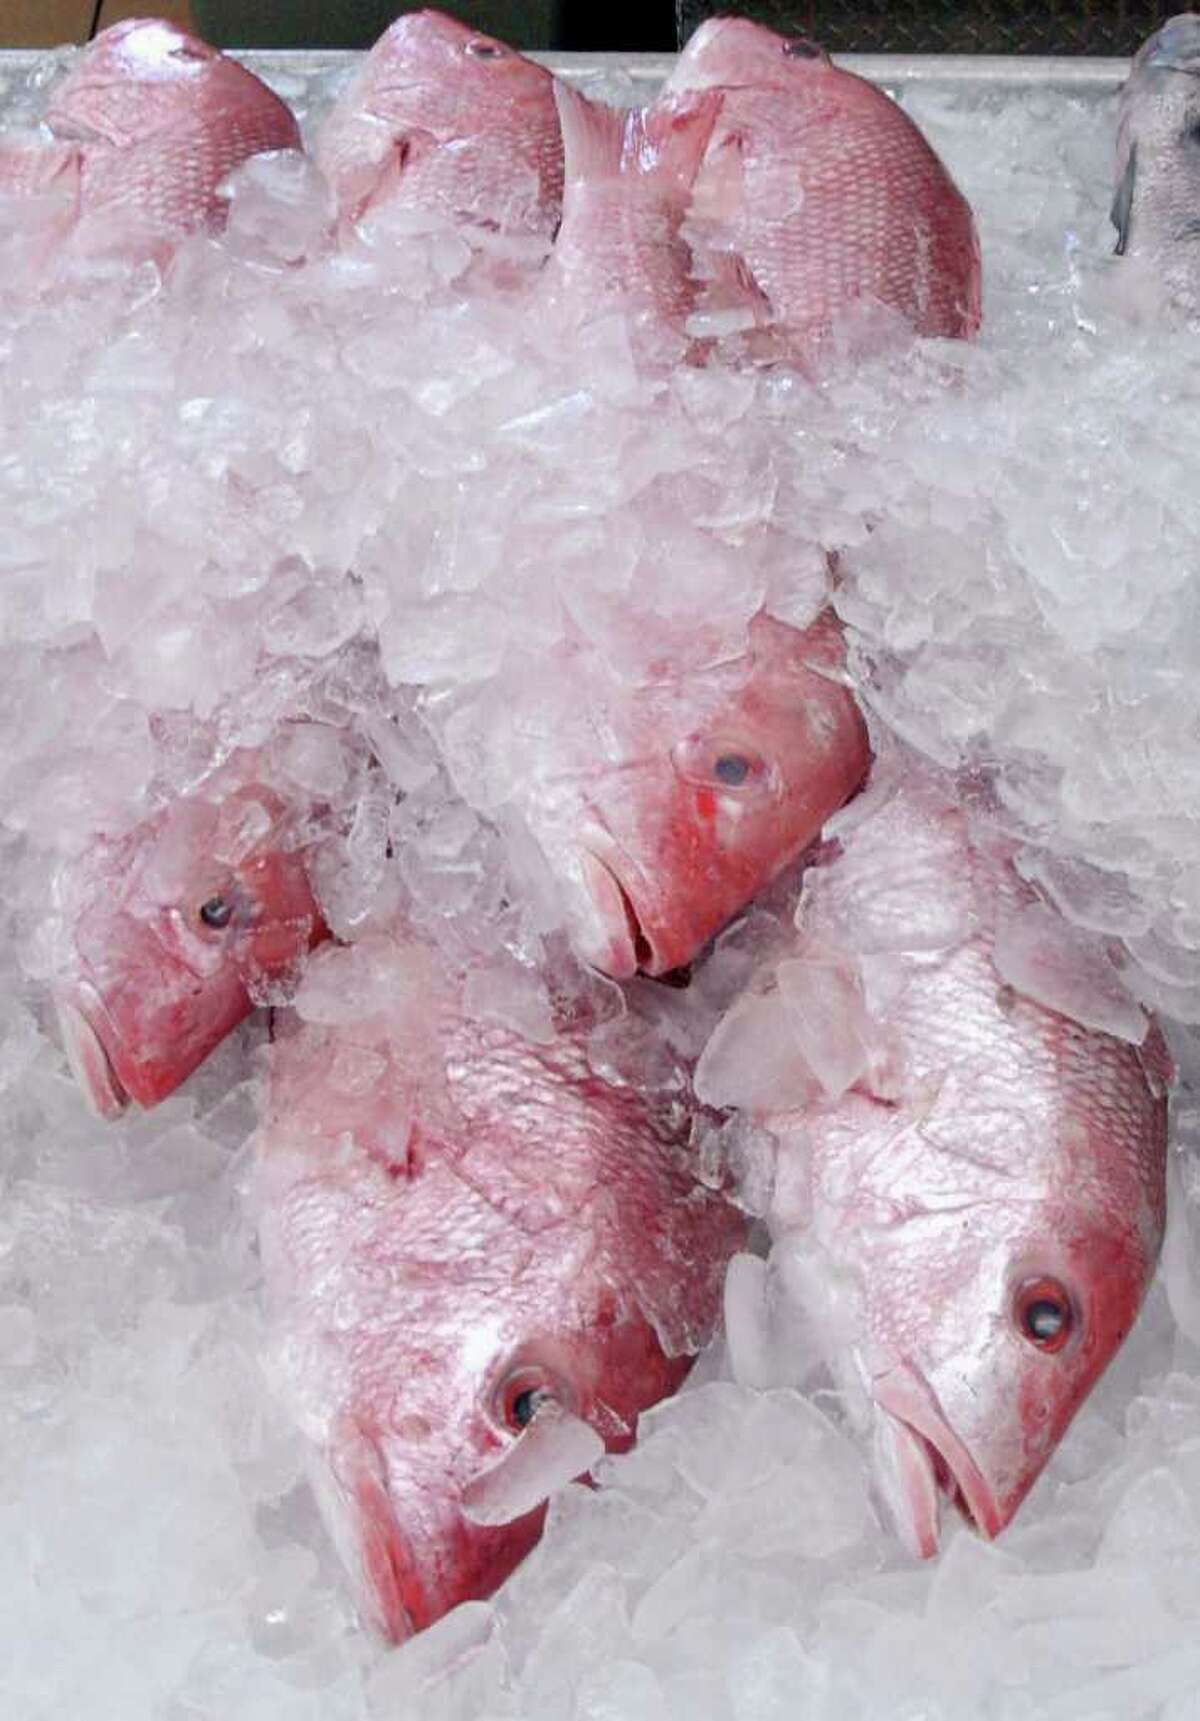 ** ADVANCE FOR WEEKEND OF DEC. 10-11 ** A few whole red snapper are shown for sale Joe Patti's Seafood Market in Pensacola, Fla., Wednesday Nov. 30, 2005. The tasty fish once so plentiful in these gulf waters have long since been depleted by heavy fishing, shrimp trawling and environmental pressures.